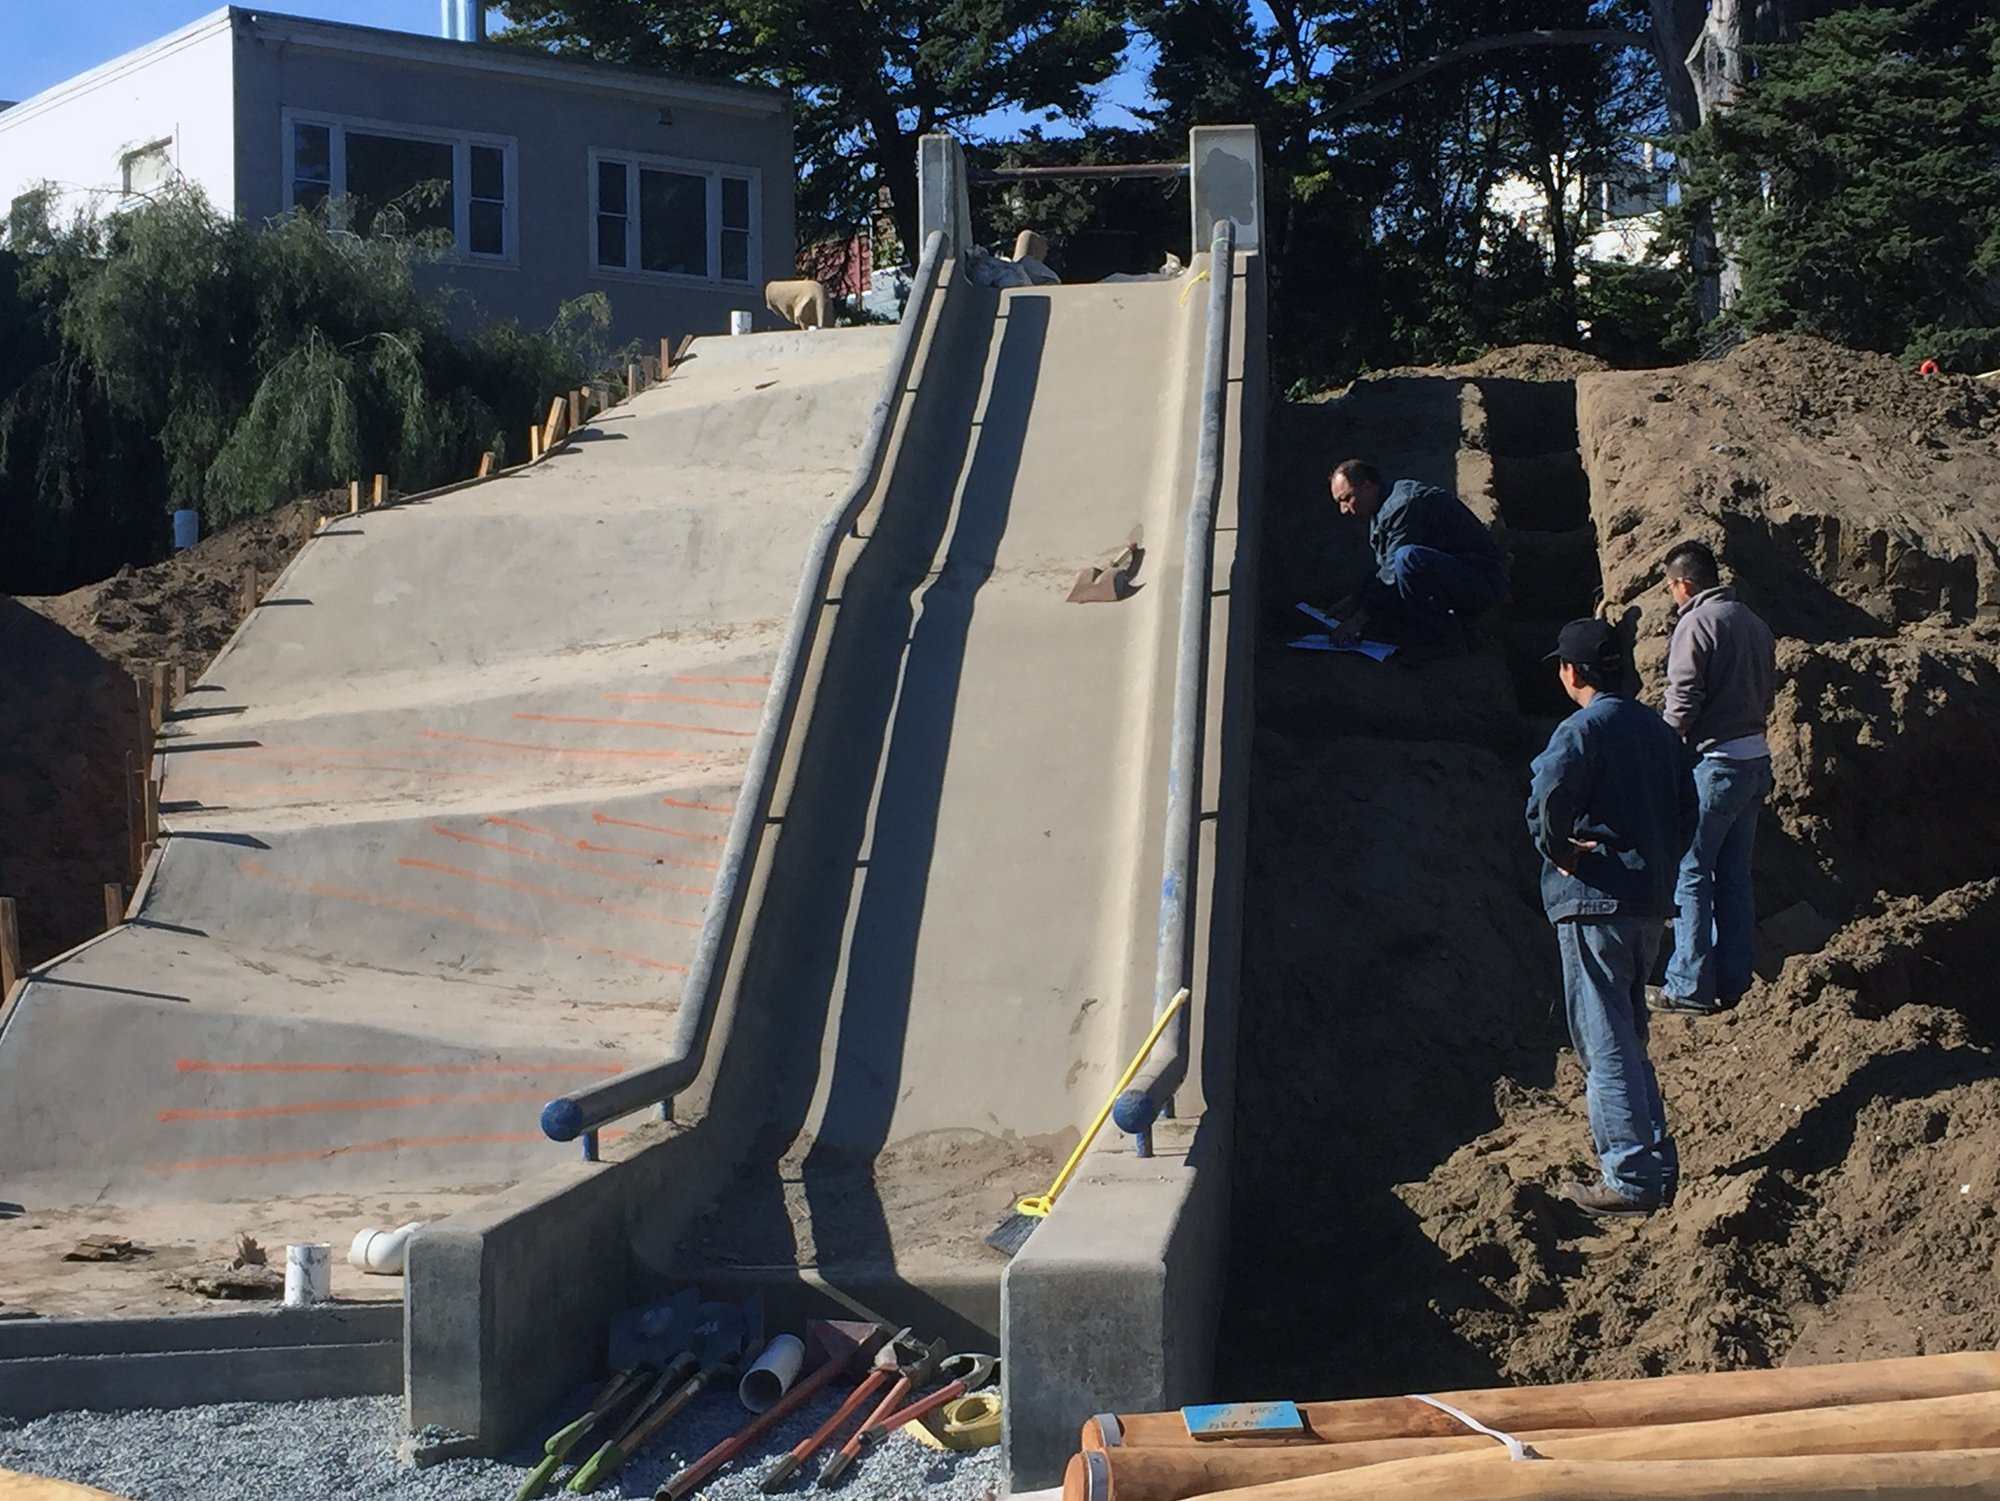 Workers rebuilding the playground's concrete slide.